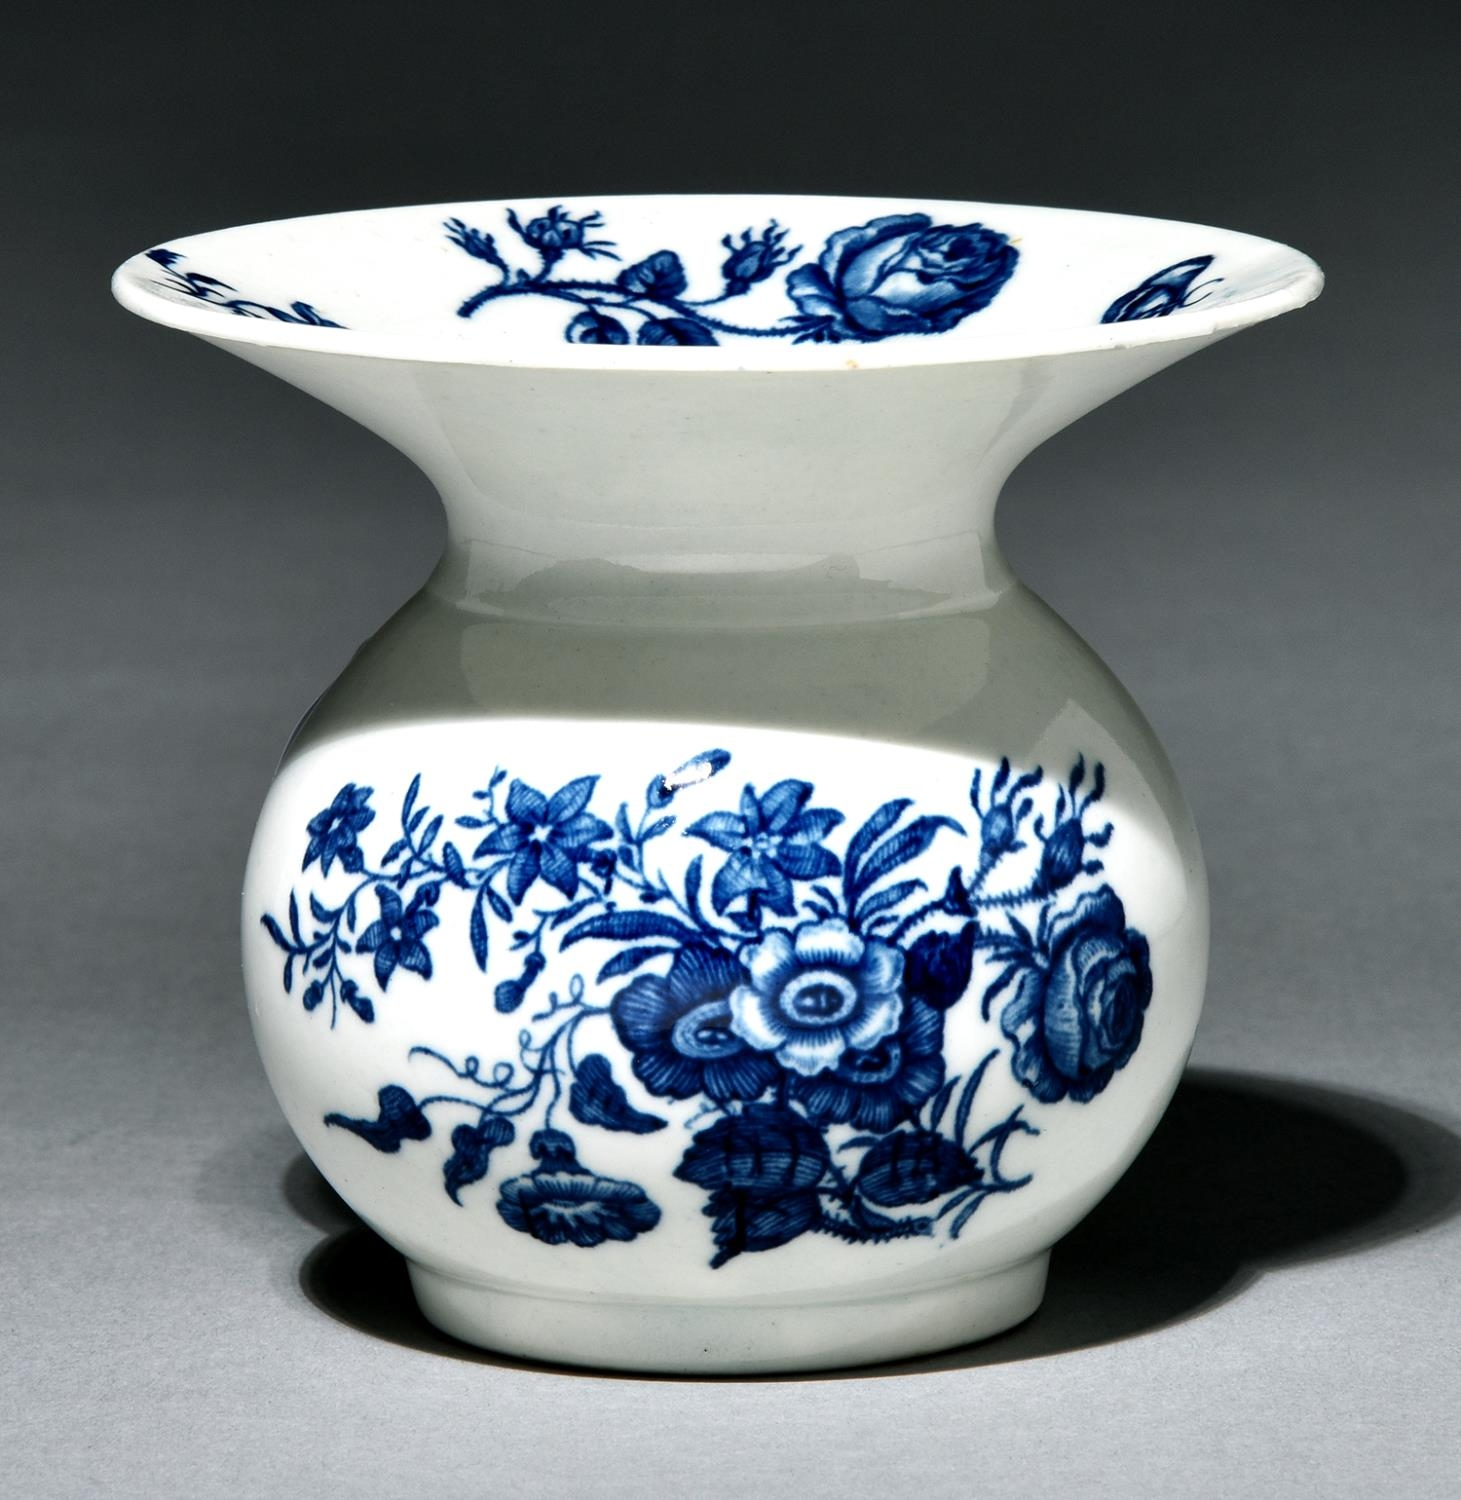 A Worcester spittoon, c1775, transfer printed in underglaze blue with the Three Flowers pattern, 9.